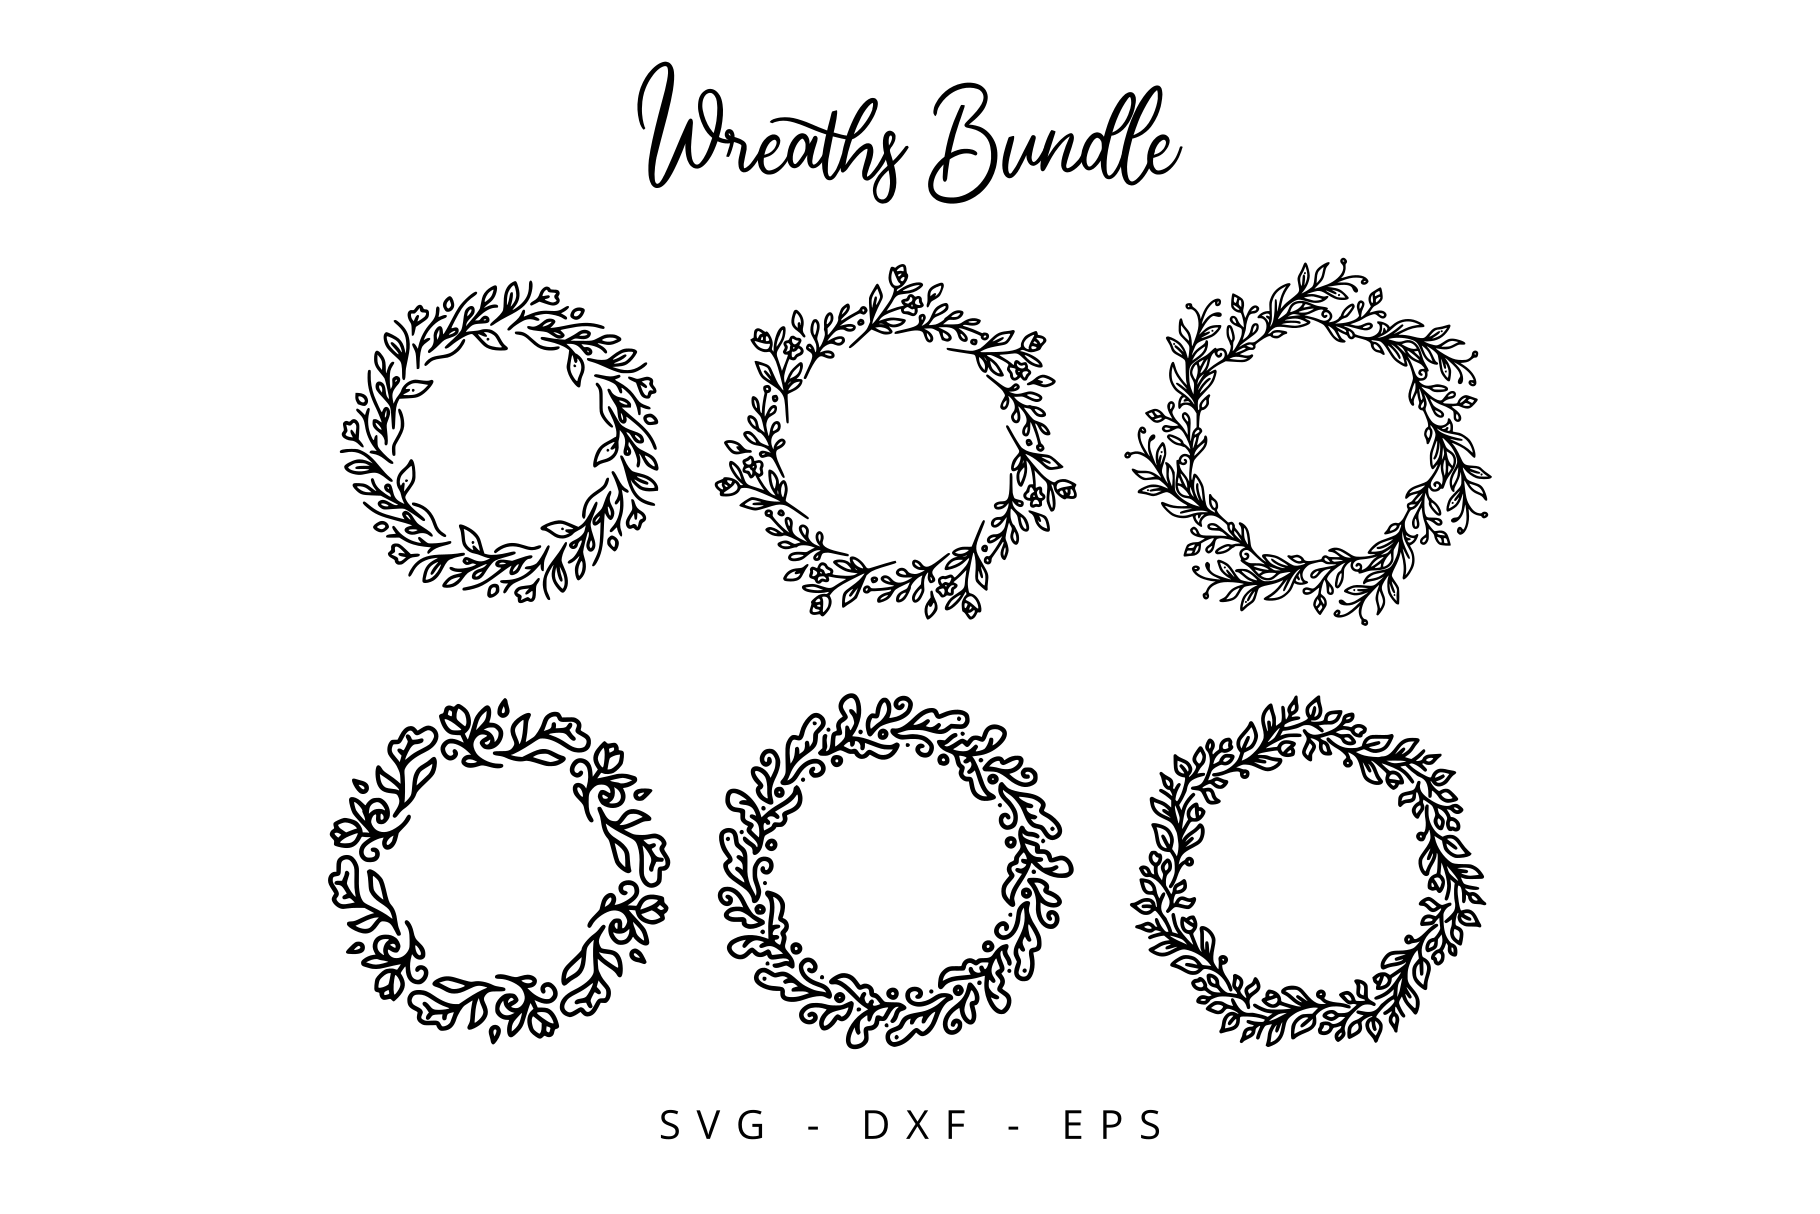 Download Free Floral Wreaths Bundle Graphic By Herbanuts Creative Fabrica for Cricut Explore, Silhouette and other cutting machines.